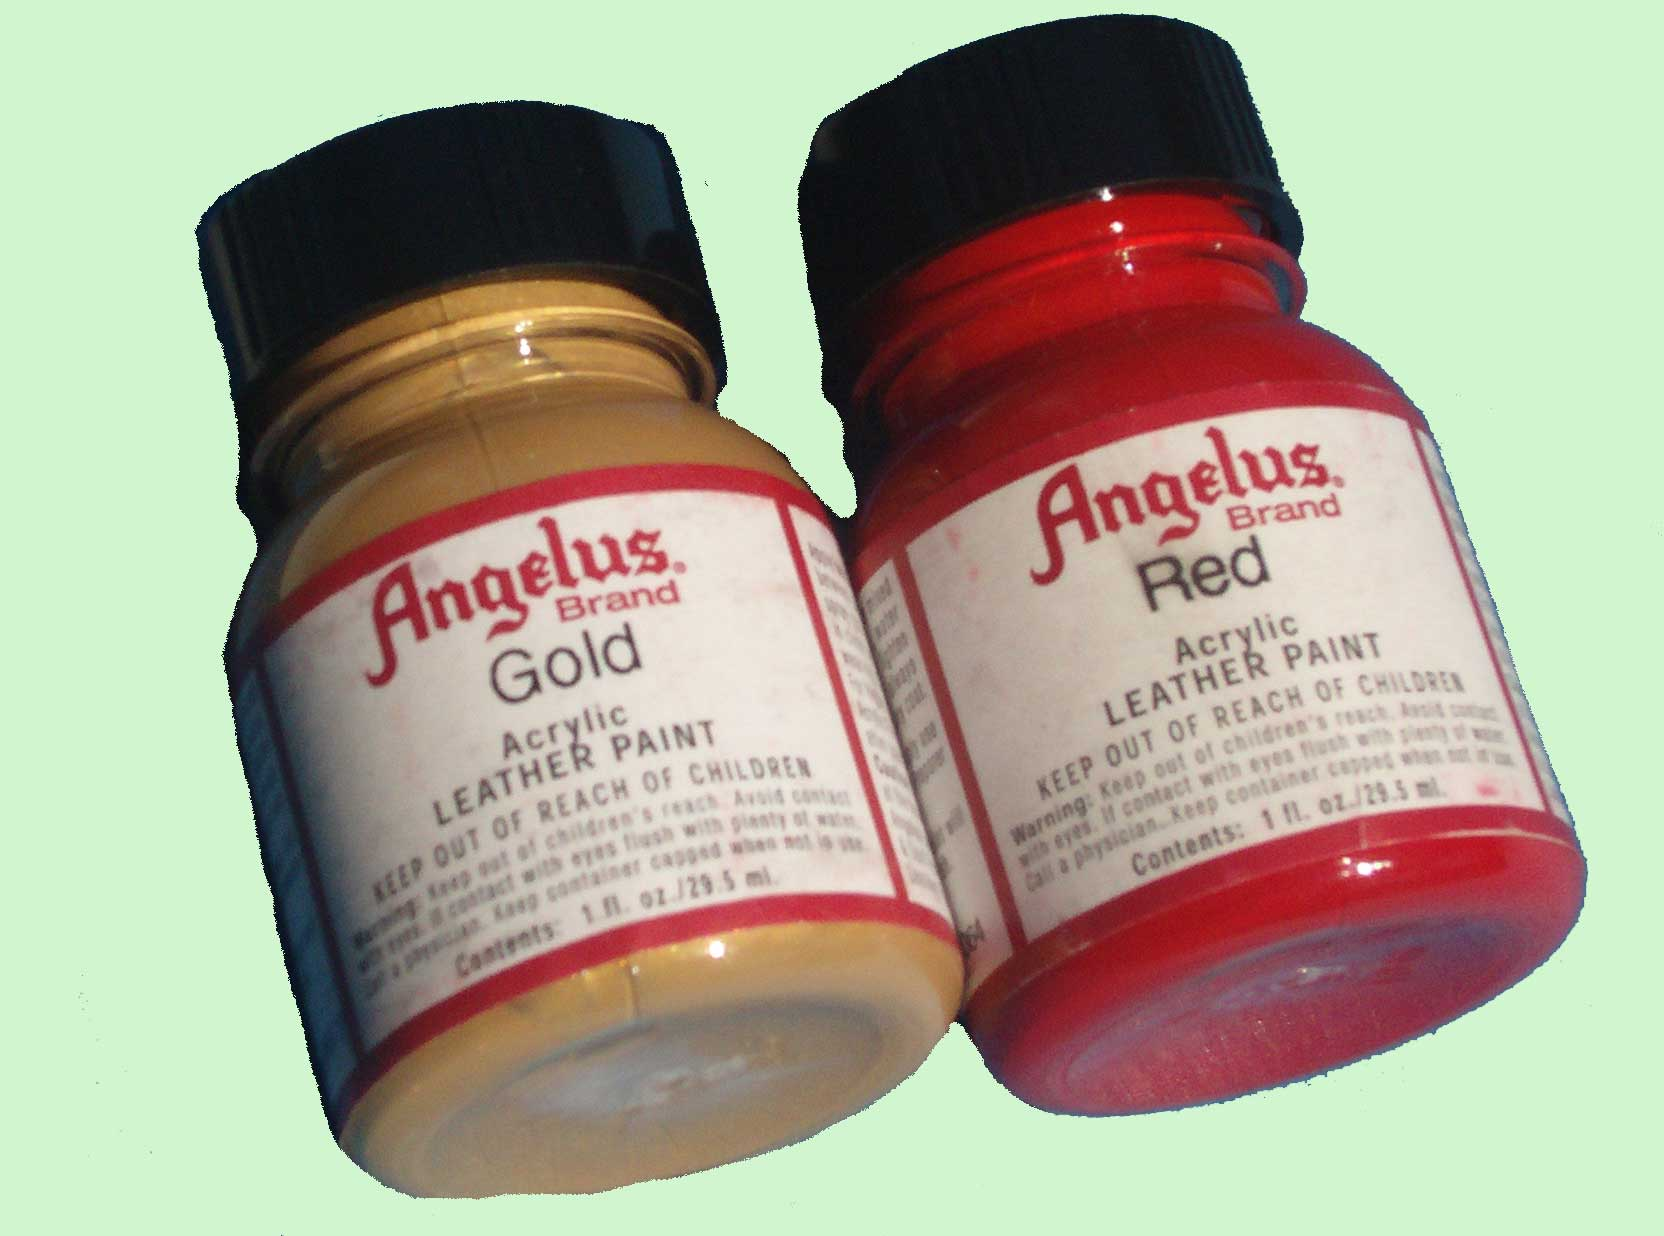 Where Can I Buy Angelus Shoe Paint